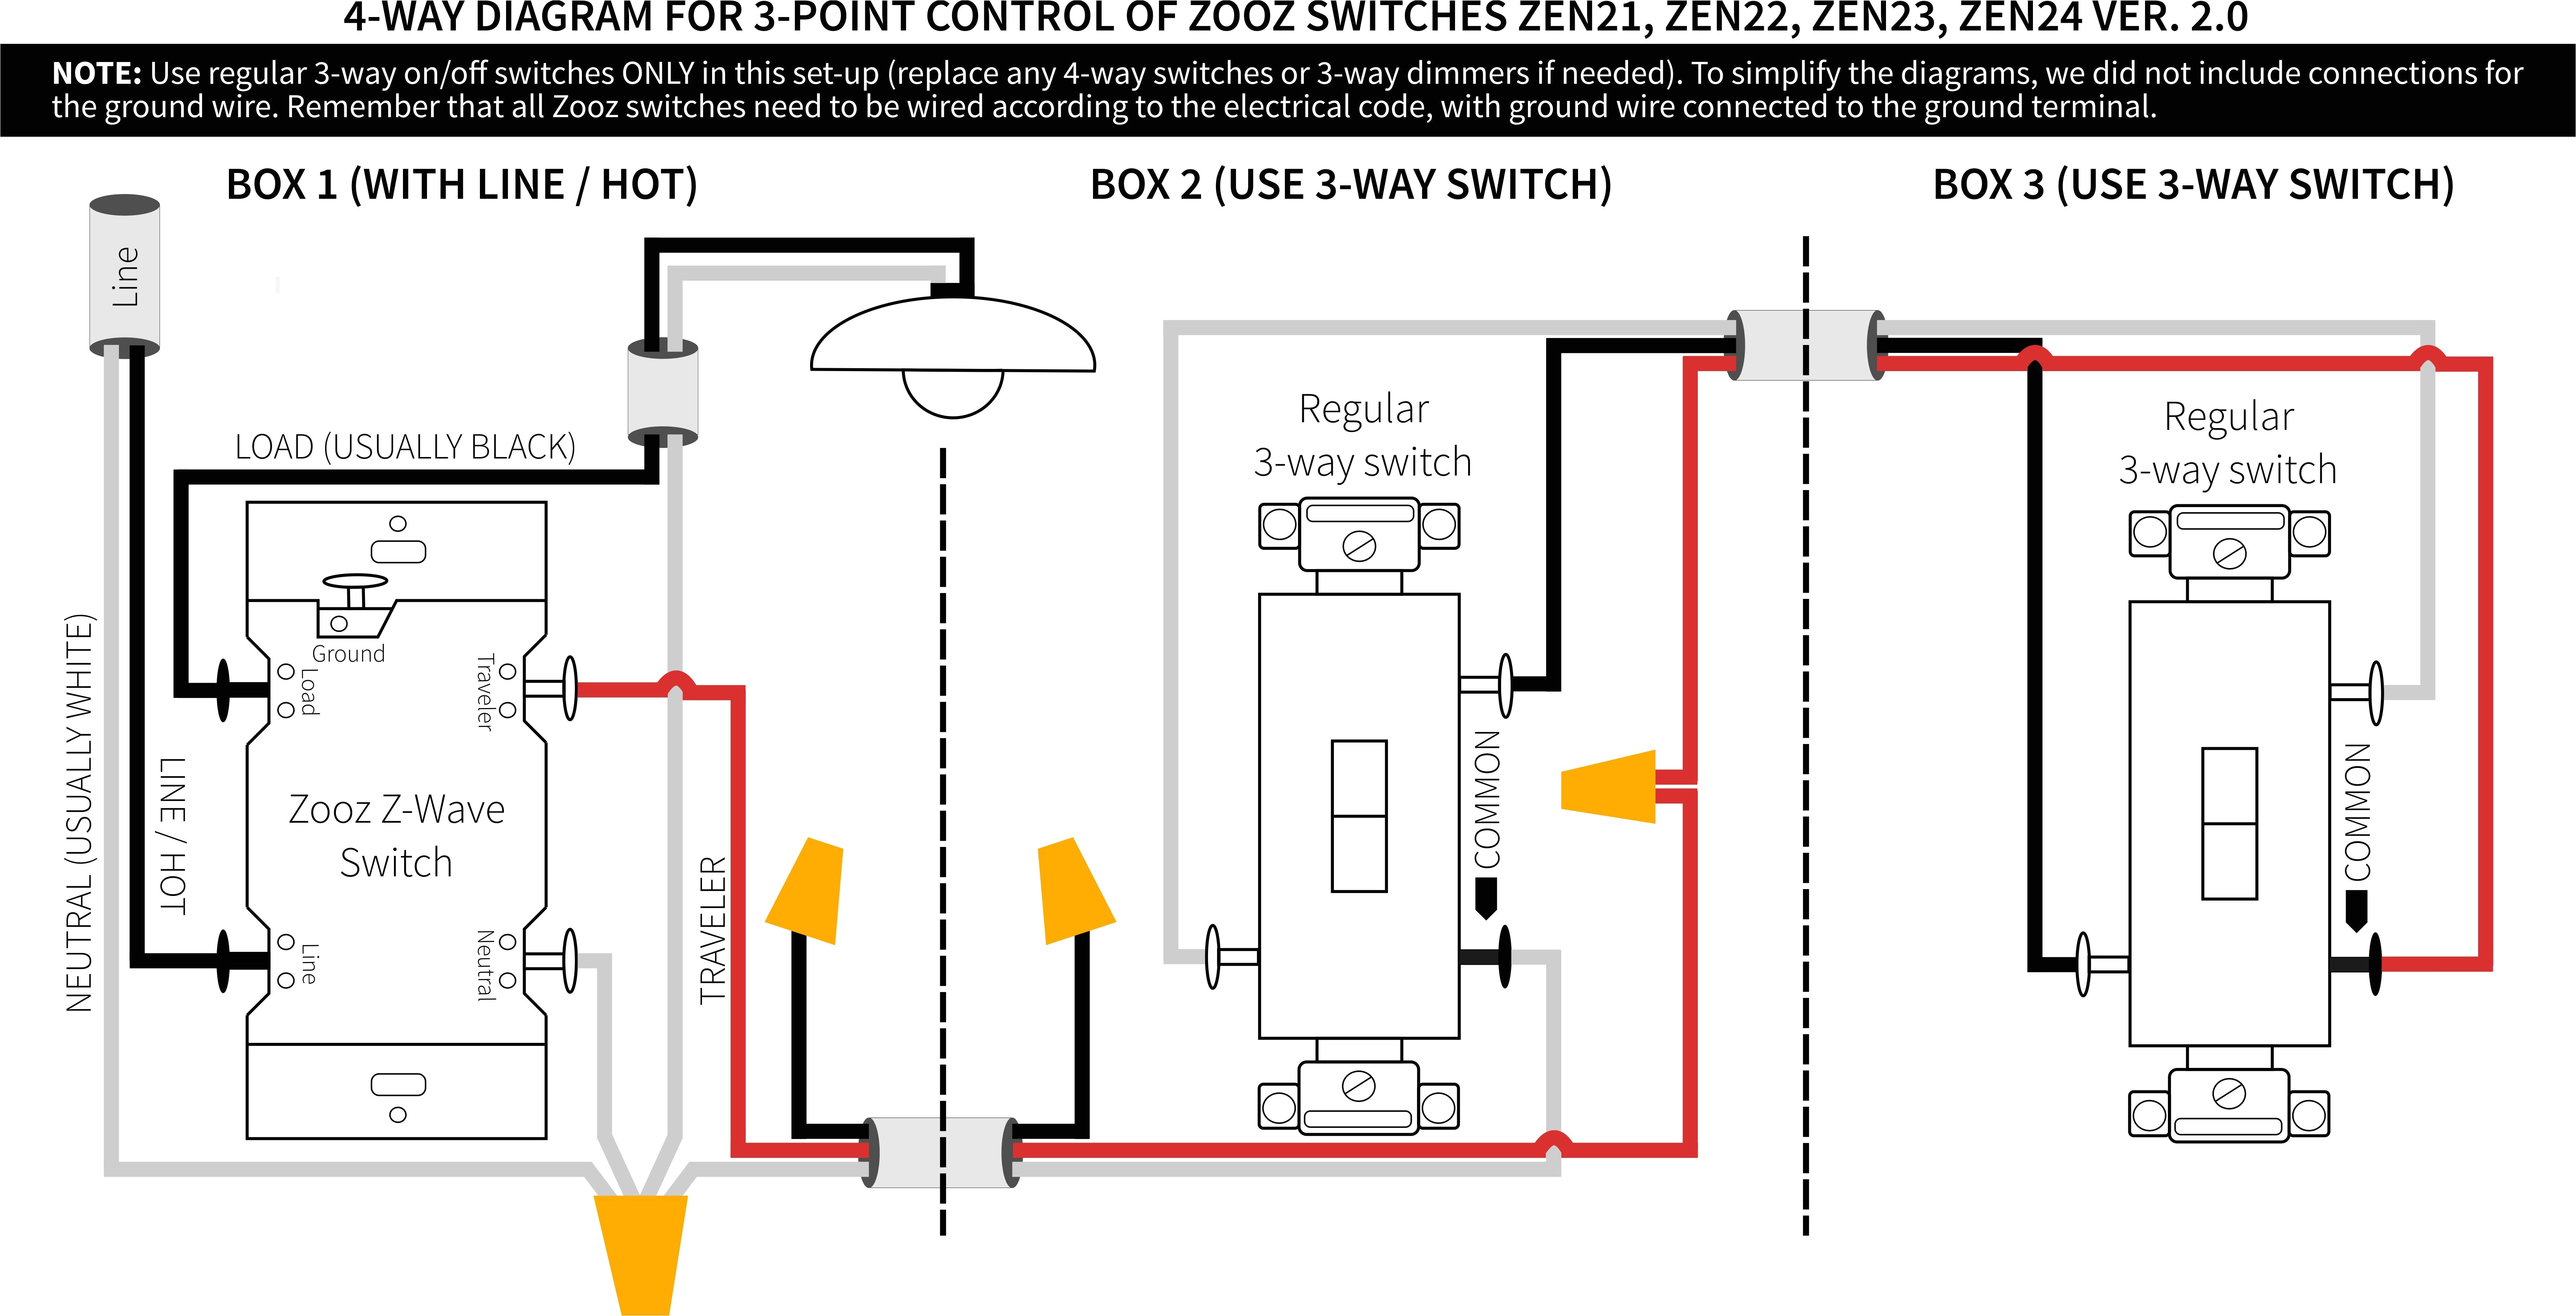 ceiling motion detectors with 3 way switch wiring diagram variations 3 way switch wiring diagram variations